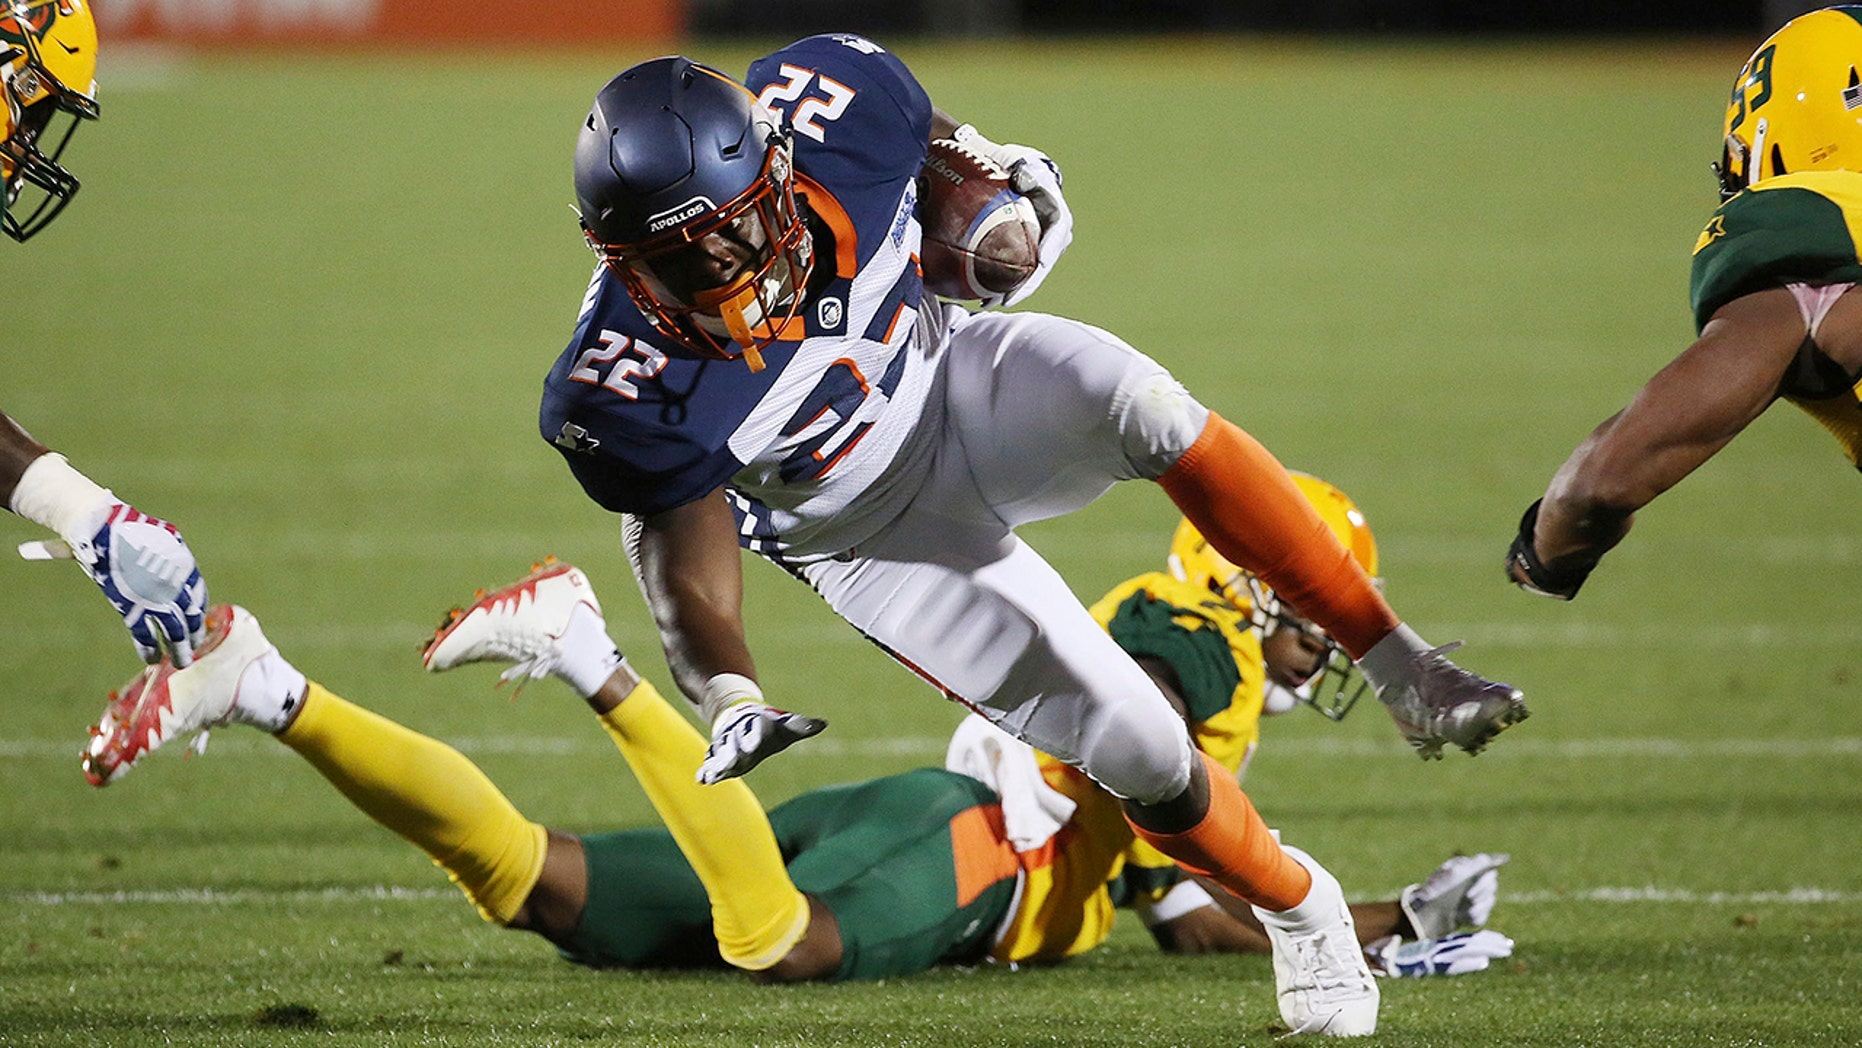 Orlando Apollos running back D'Ernest Johnson (22) carries against the Arizona Hotshots during an Alliance of American Football game in Orlando, Fla., on March 16, 2019. (Associated Press)